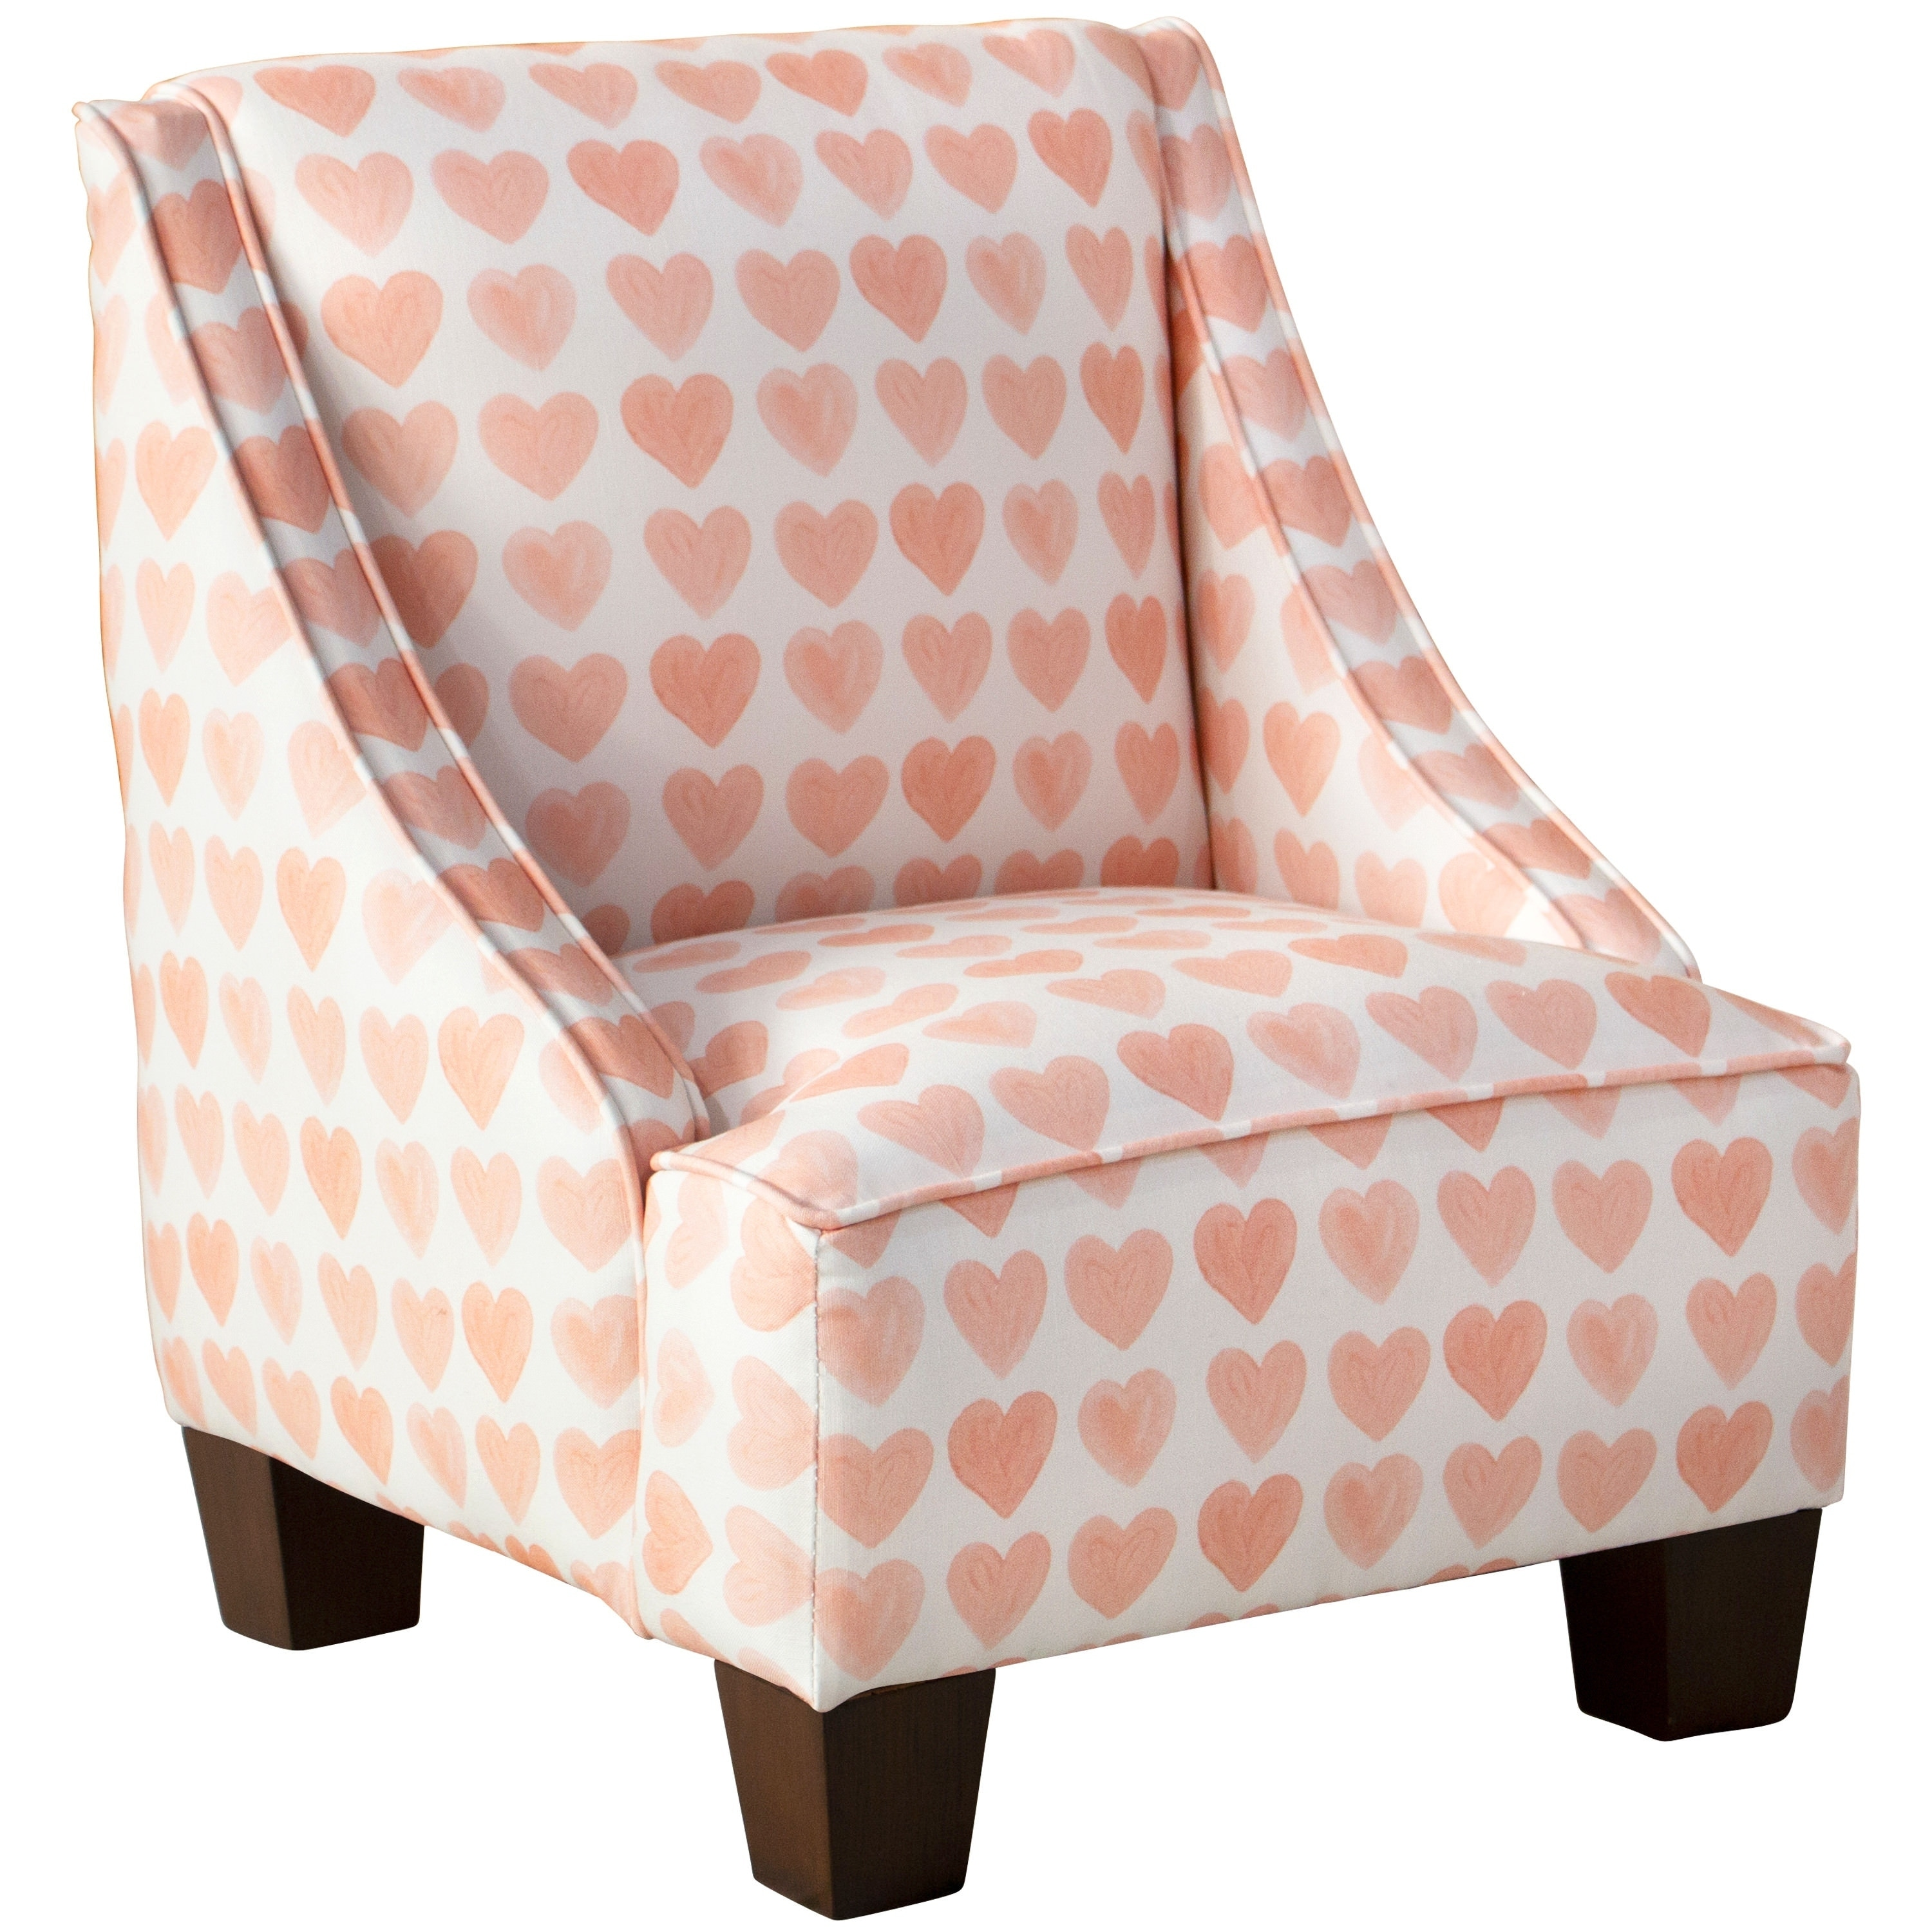 kids arm chairs white leather task chair shop skyline furniture swoop in hearts peach on